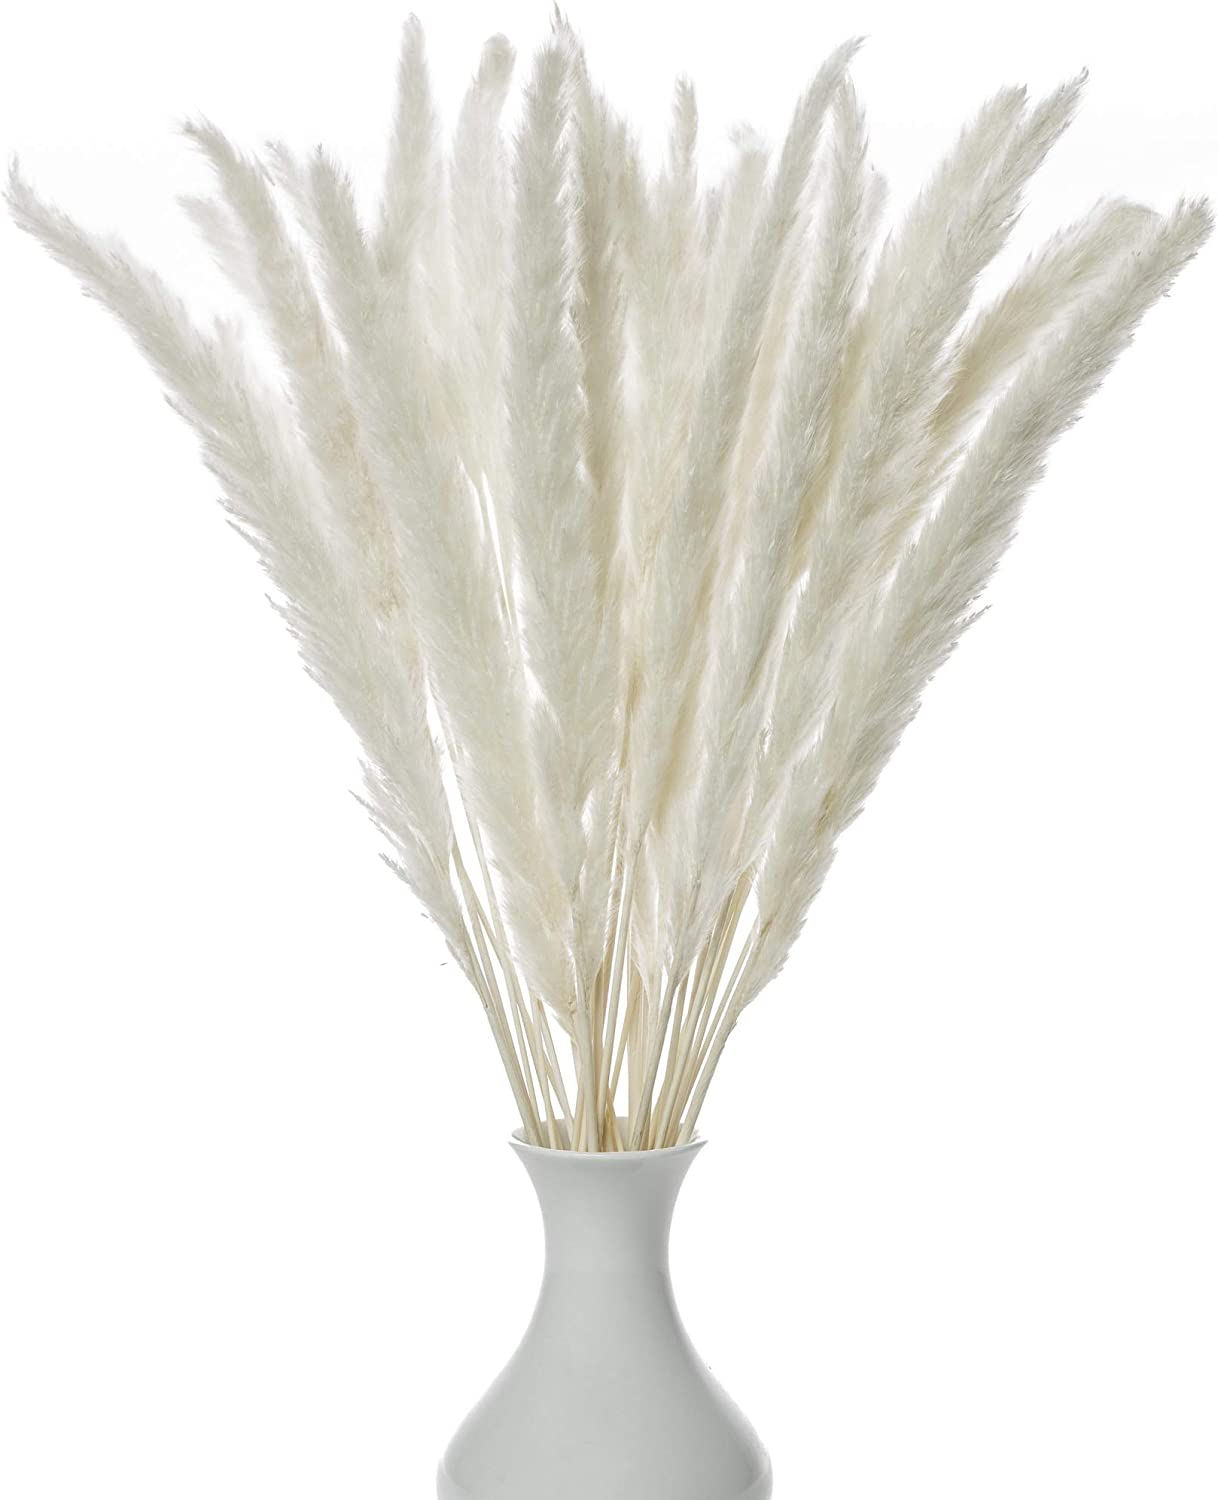 Decor Dance Natural Dried Pampas Grass, 30 Pcs (17 inch Stems) Boho Floral Decorative Flower Arrangement Home Decor for Living Room Kitchen or Office, Long, Soft and Fluffy Stalks, Rustic White